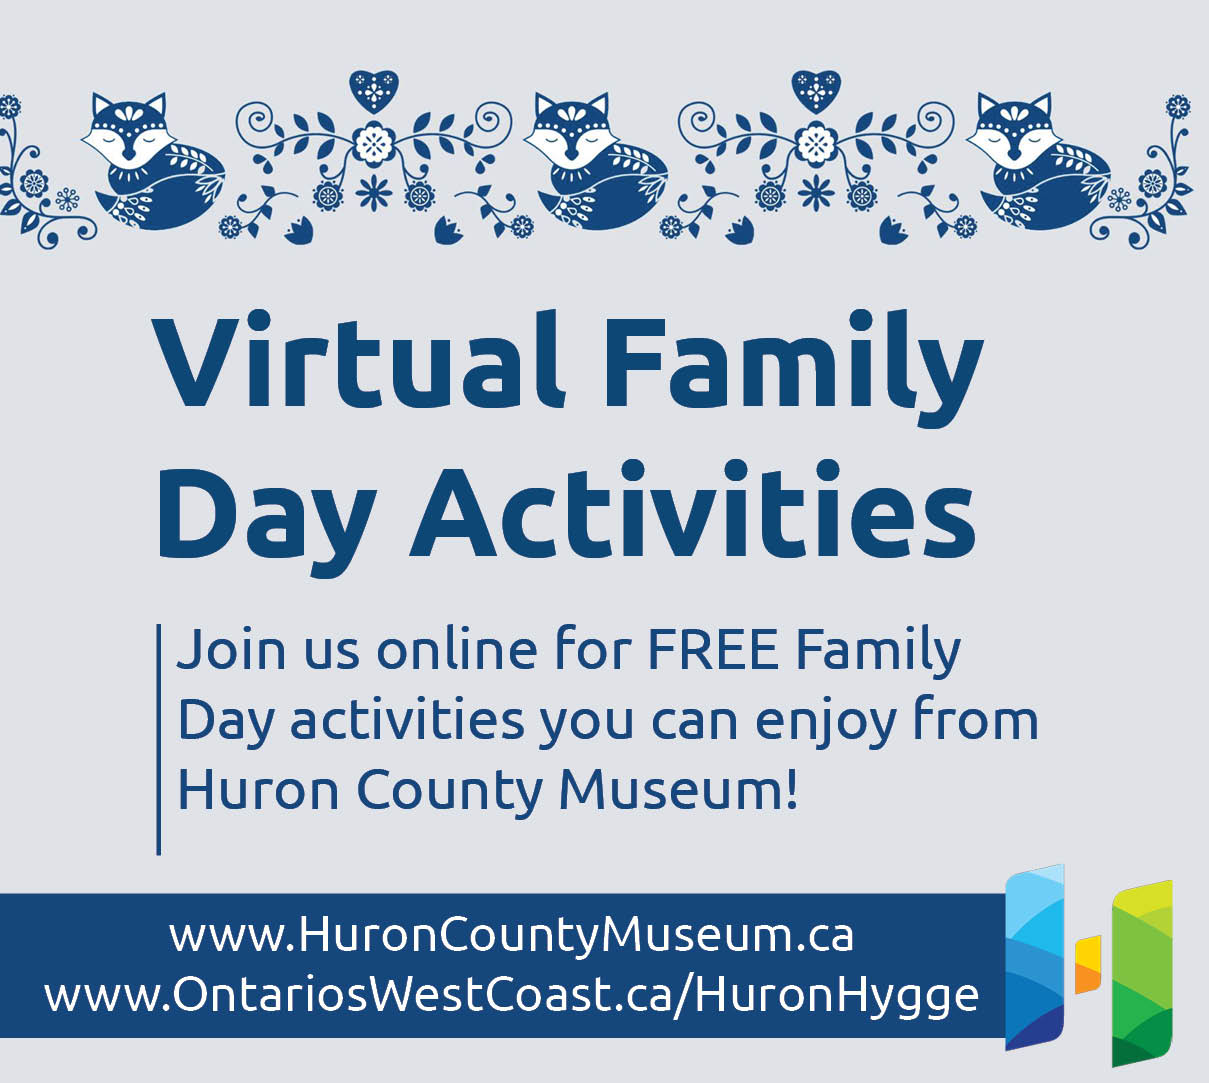 Virtual Family Day Activities from the Huron County Museum